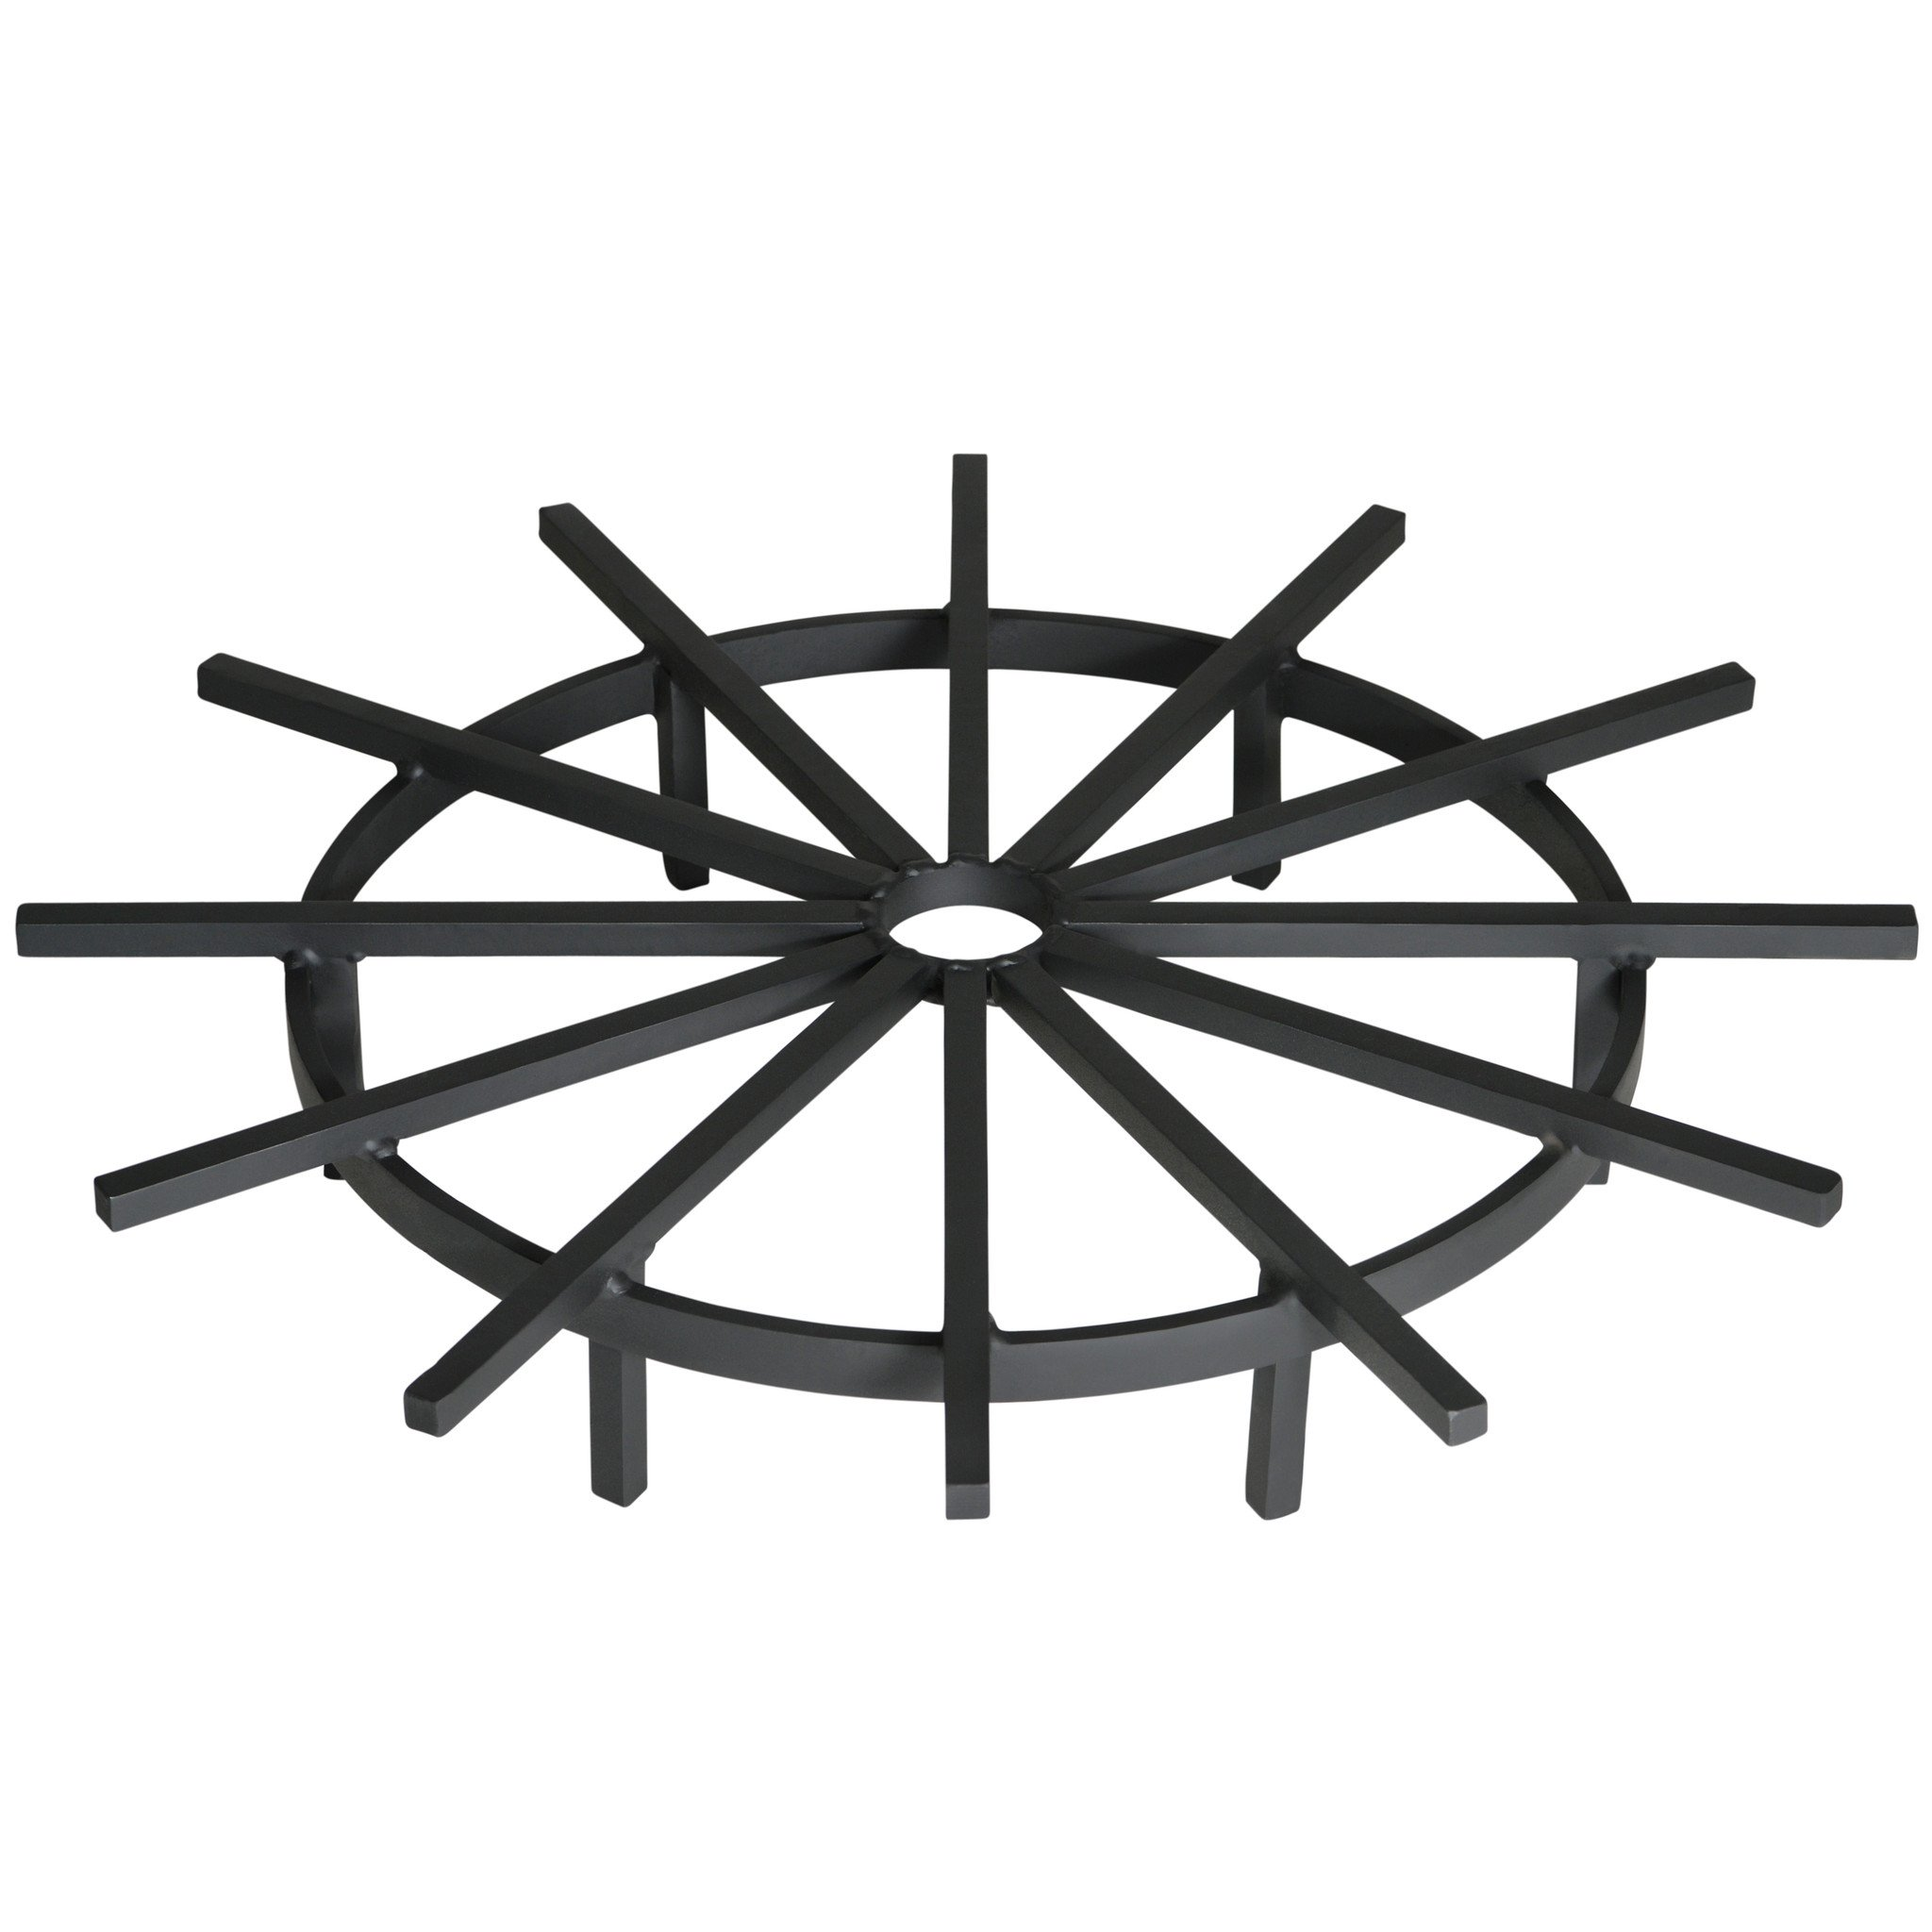 Heritage Products Heavy Duty 28 Inch Ship's Wheel Fire Pit Grate - Made in the USA